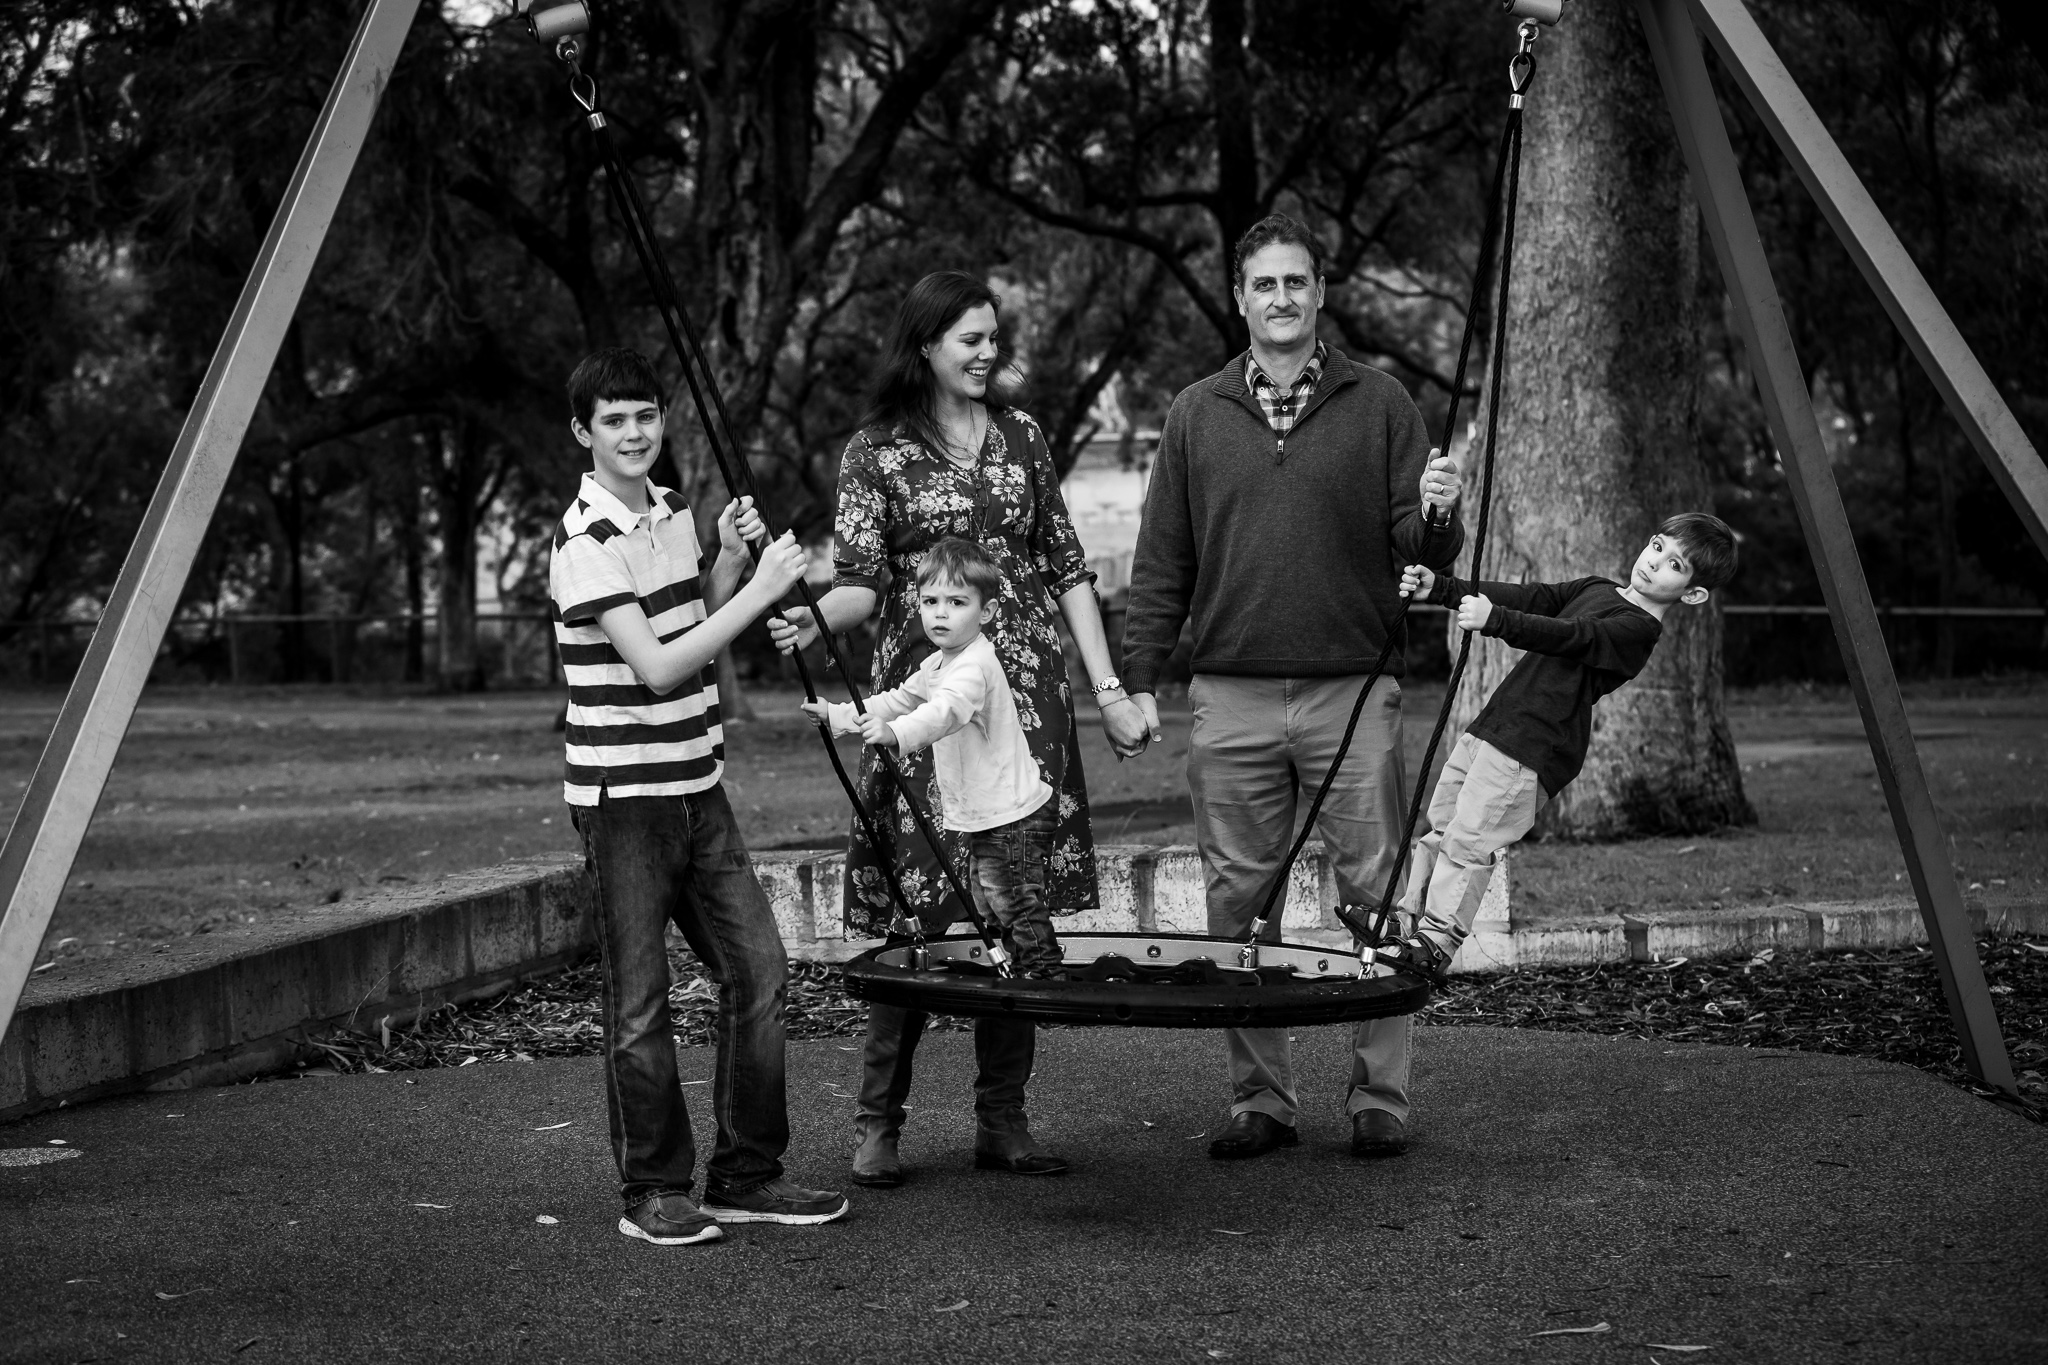 Jack-and-Purdy-Perth-Family-Photographer-7.jpg